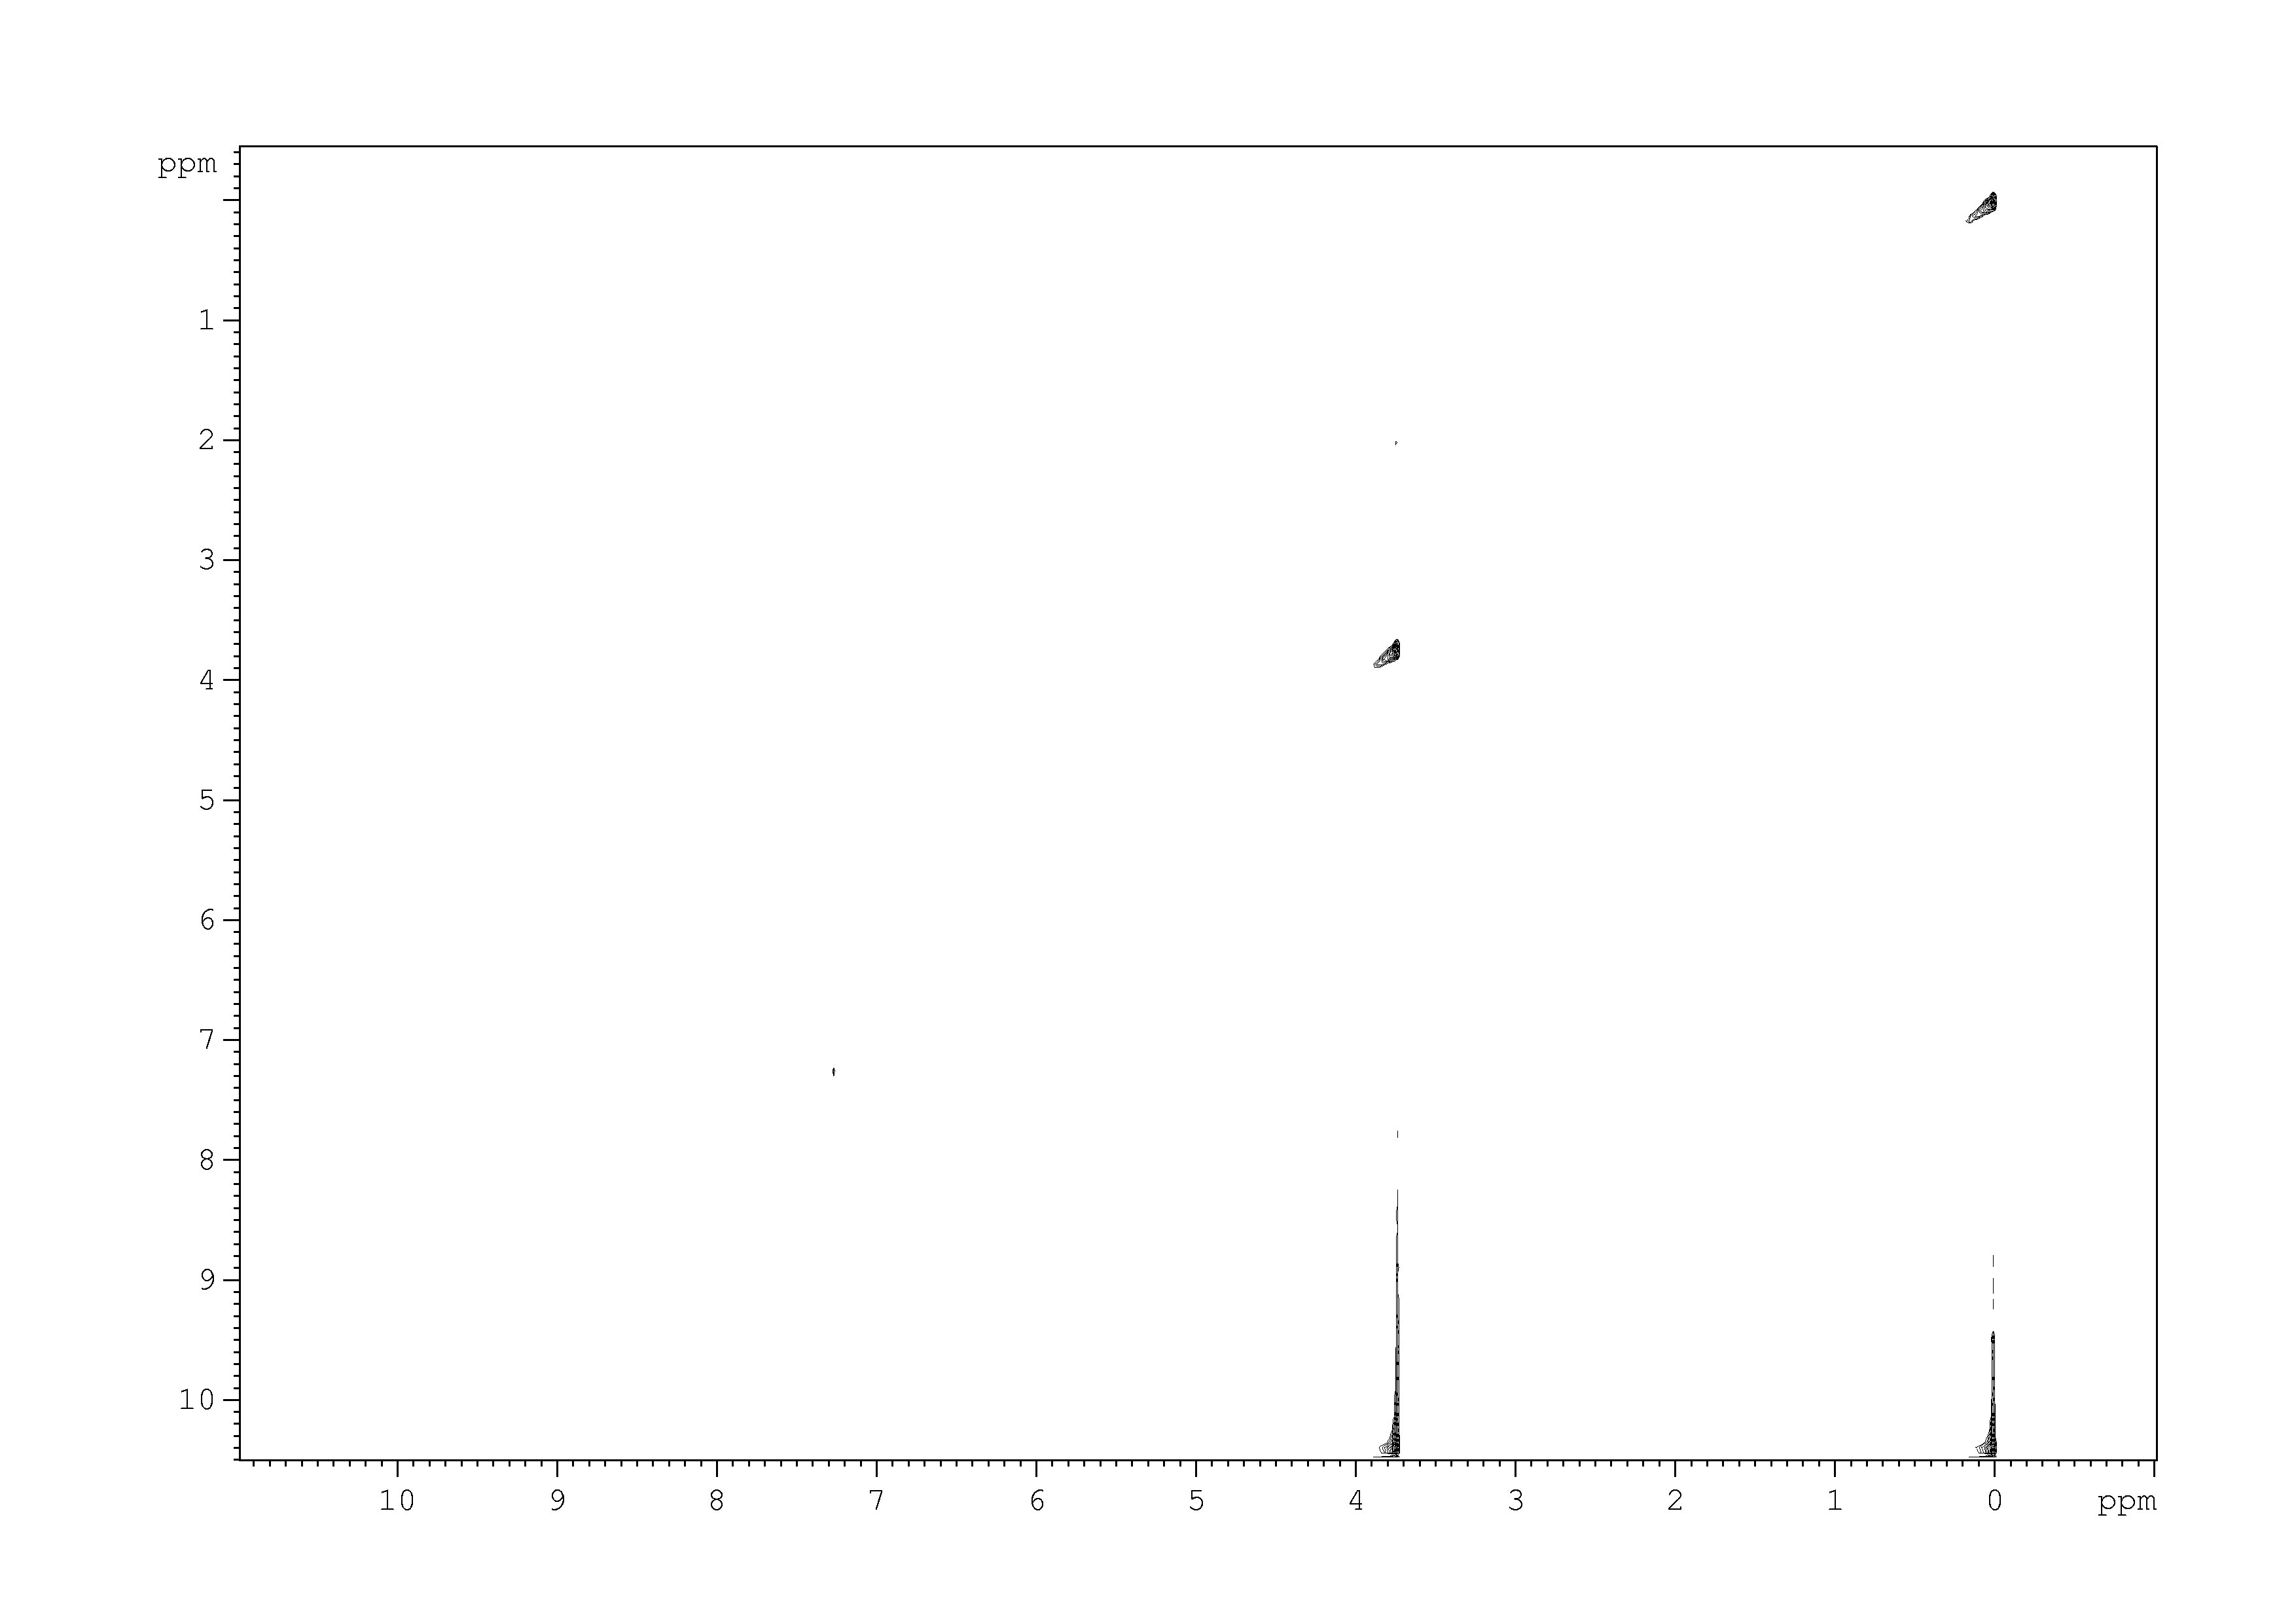 2D [1H,1H]-TOCSY, n/a spectrum for 1,2-dichloroethane